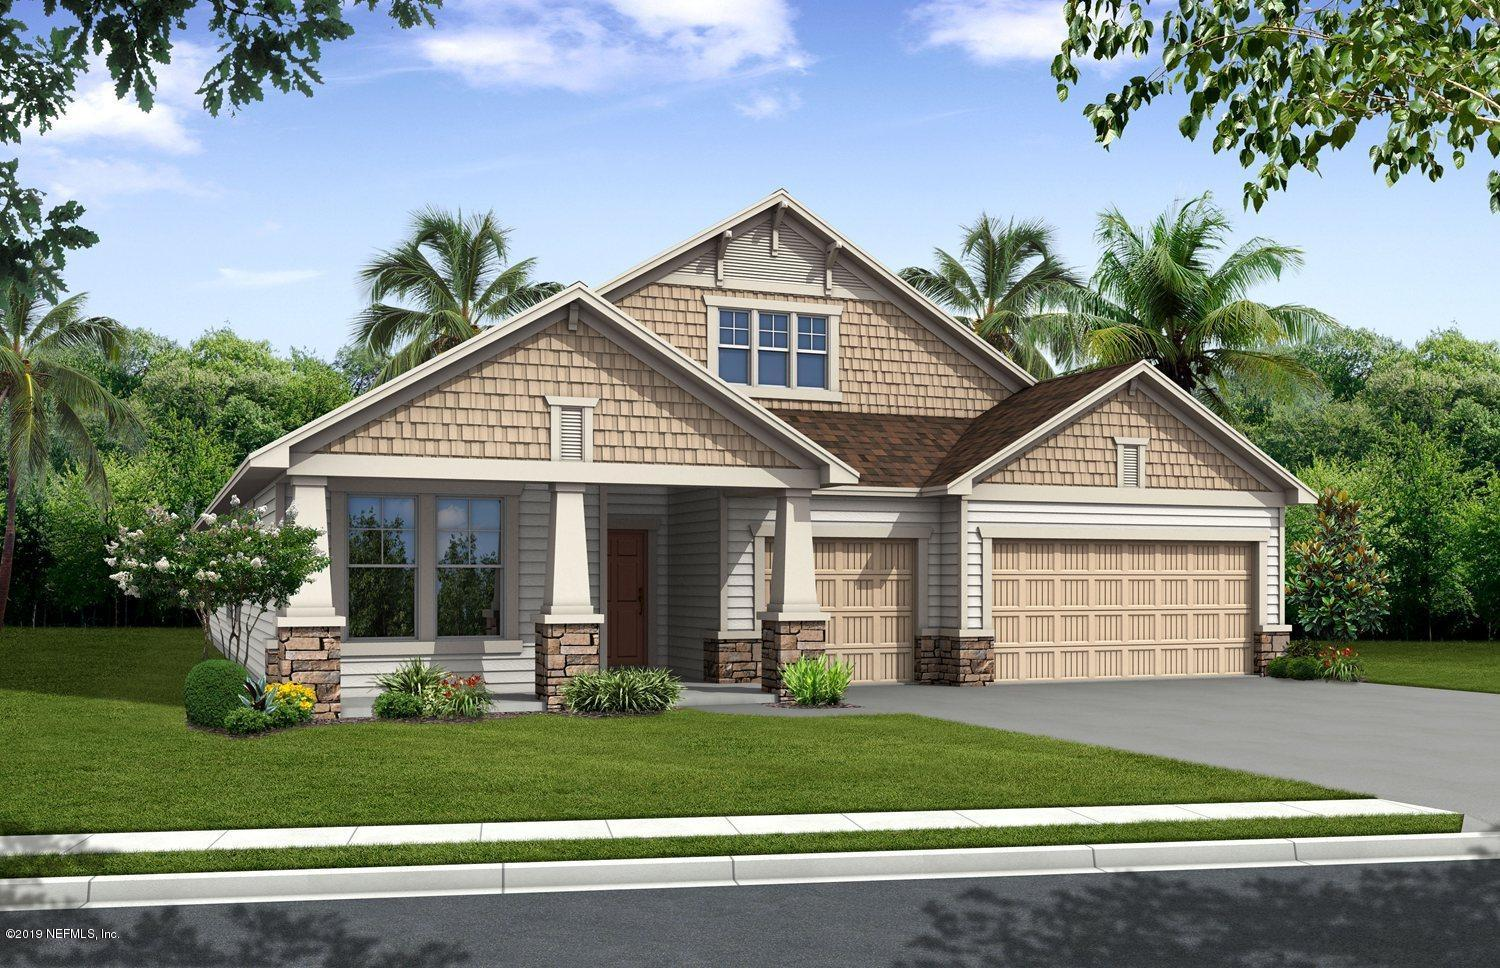 366 STONE CREEK, ST JOHNS, FLORIDA 32259, 4 Bedrooms Bedrooms, ,3 BathroomsBathrooms,Residential - single family,For sale,STONE CREEK,985490